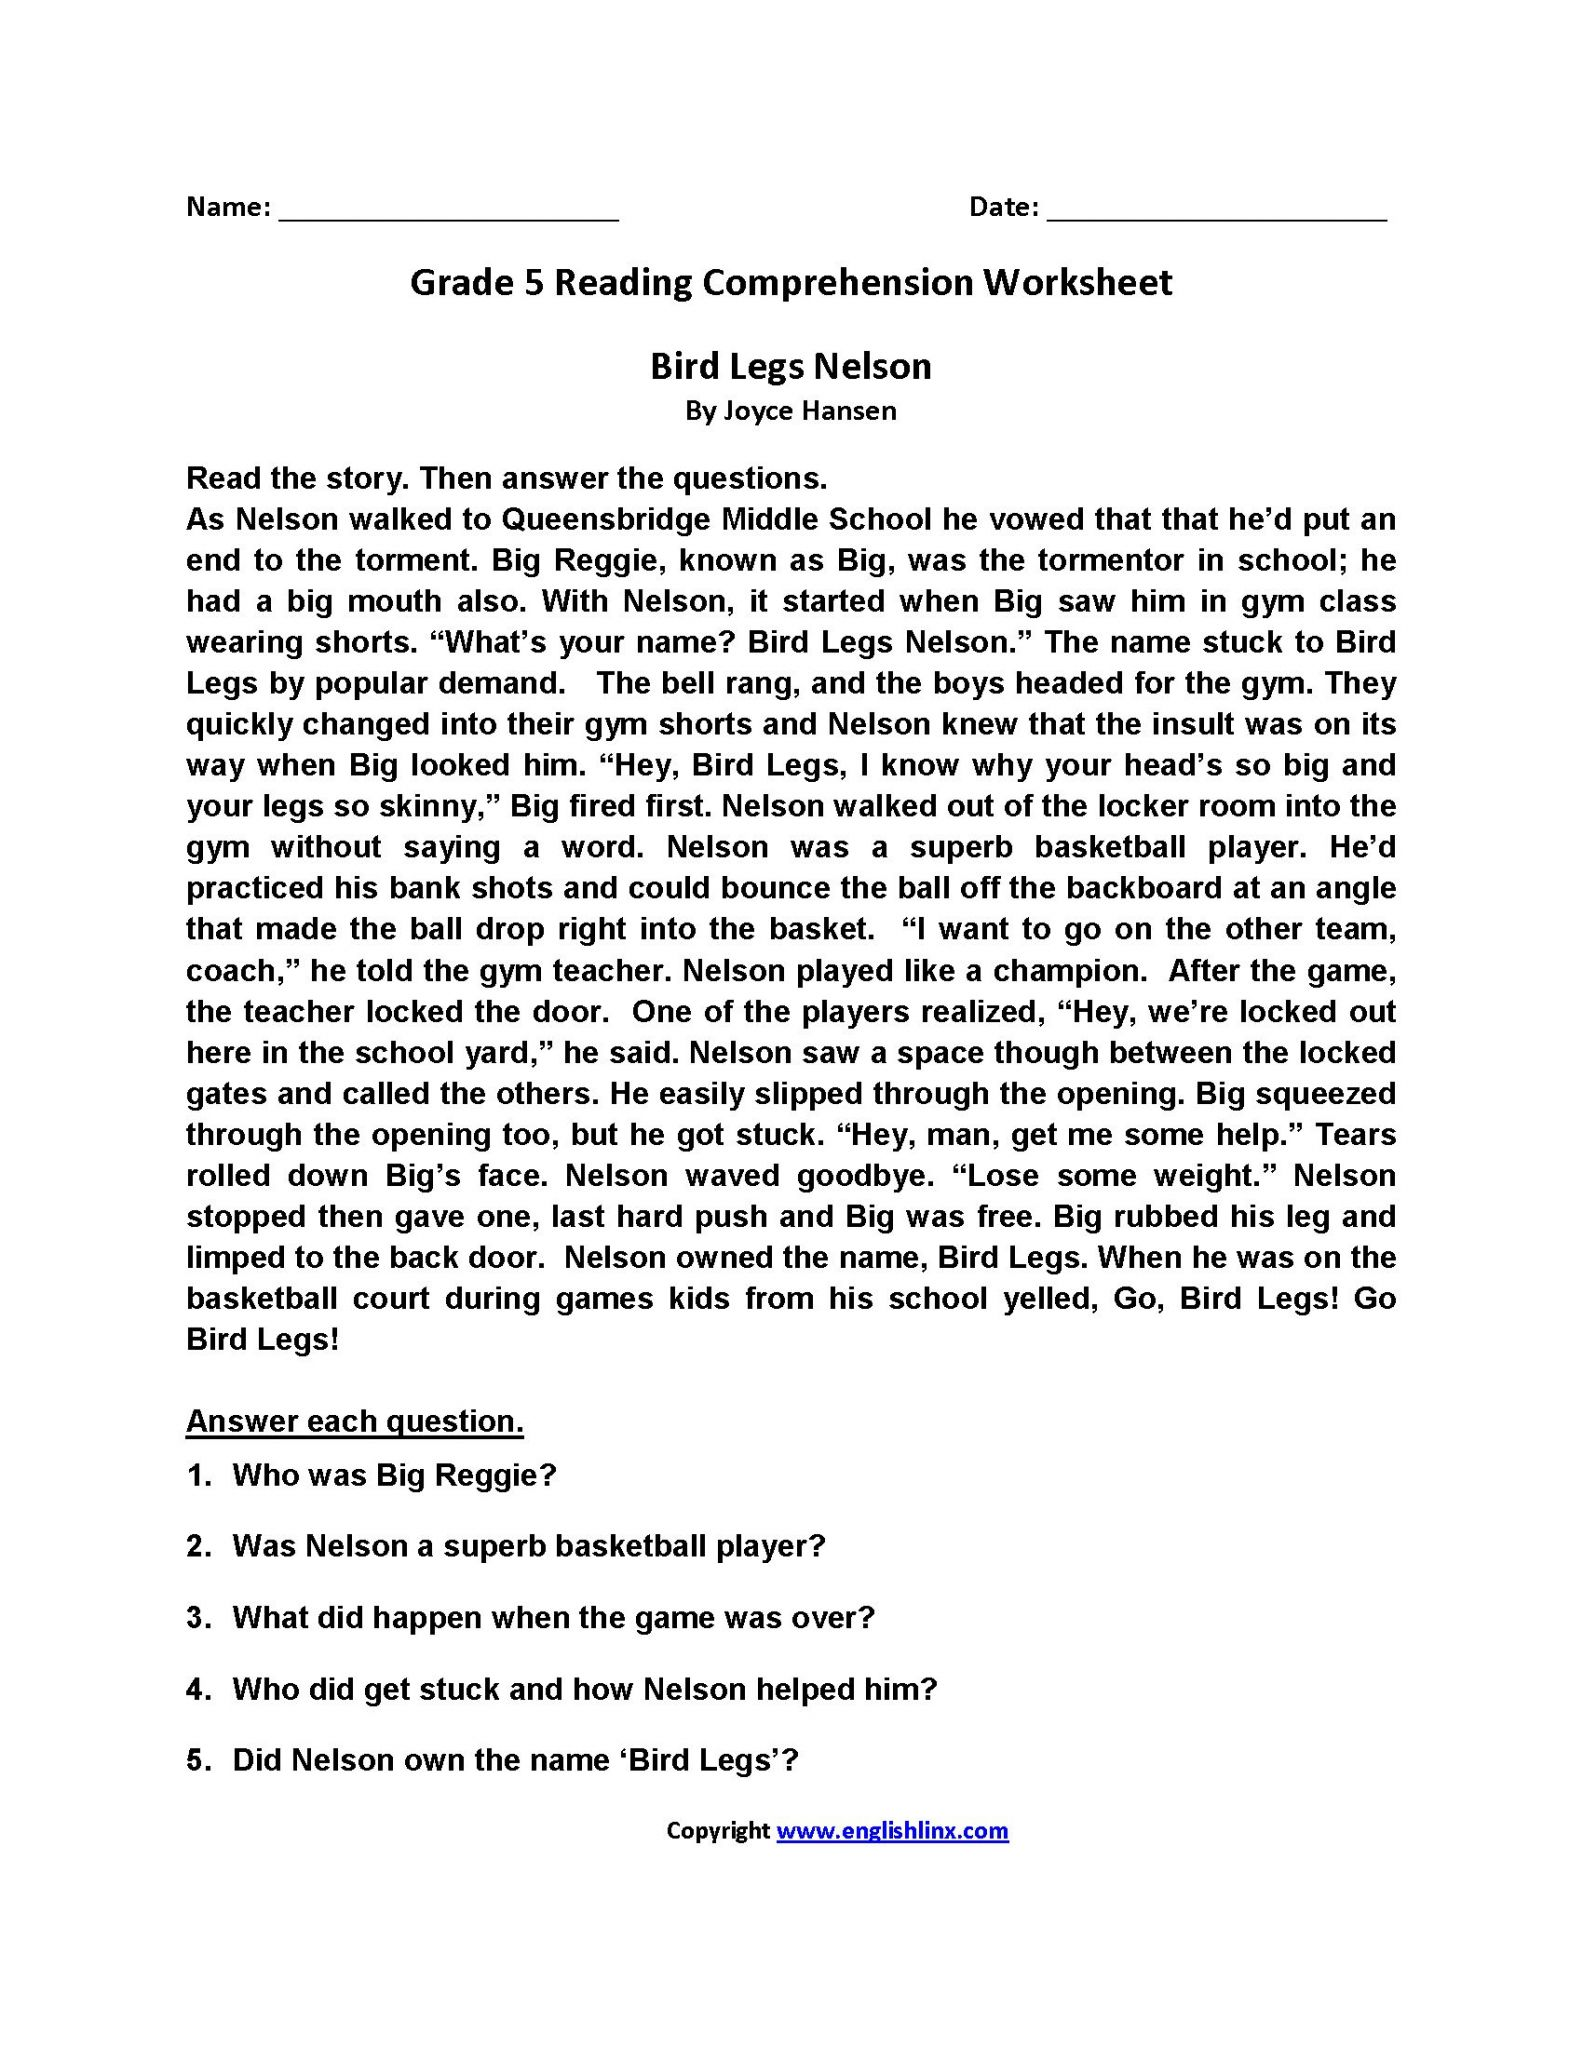 Worksheet For 5th Grade Prehension